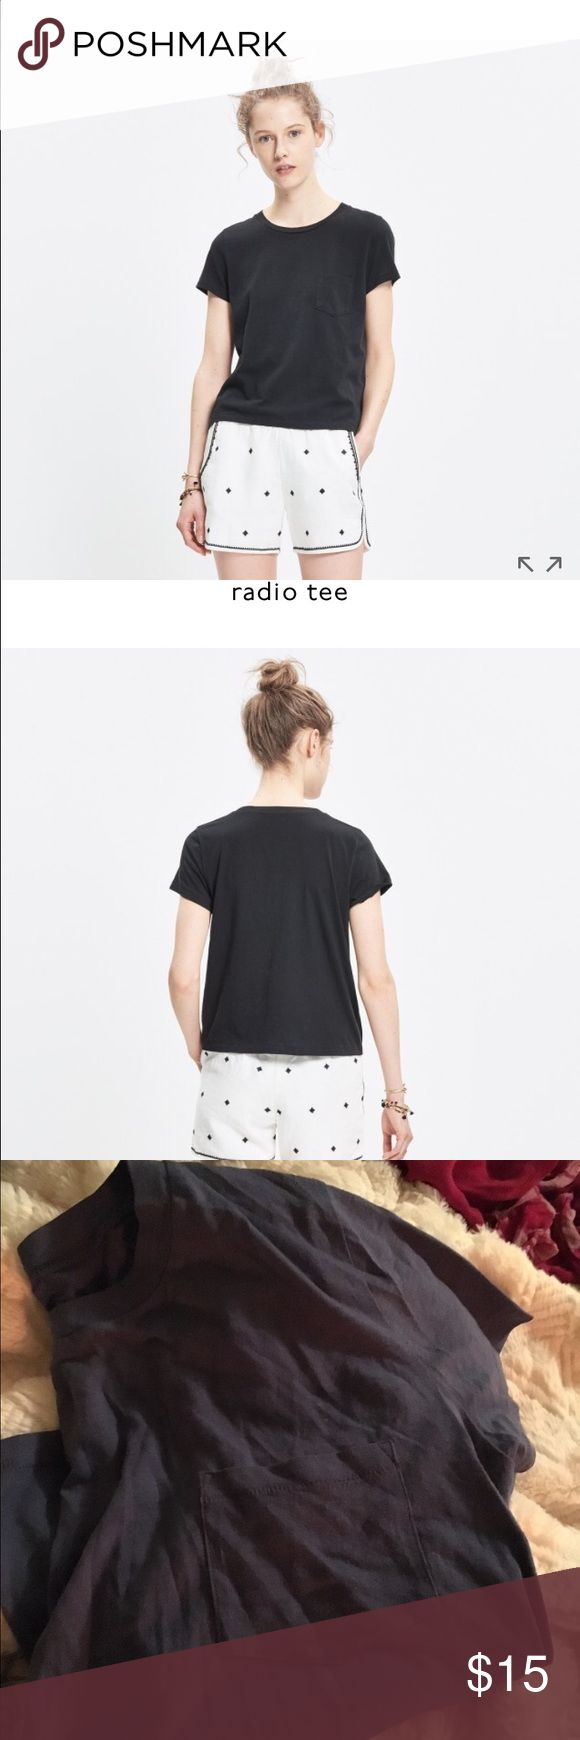 Madewell Radio Tee in Periwinkle Blue Blue soft crop Tee. Great condition. No visible holes or stains. True to size Madewell Tops Tees - Short Sleeve